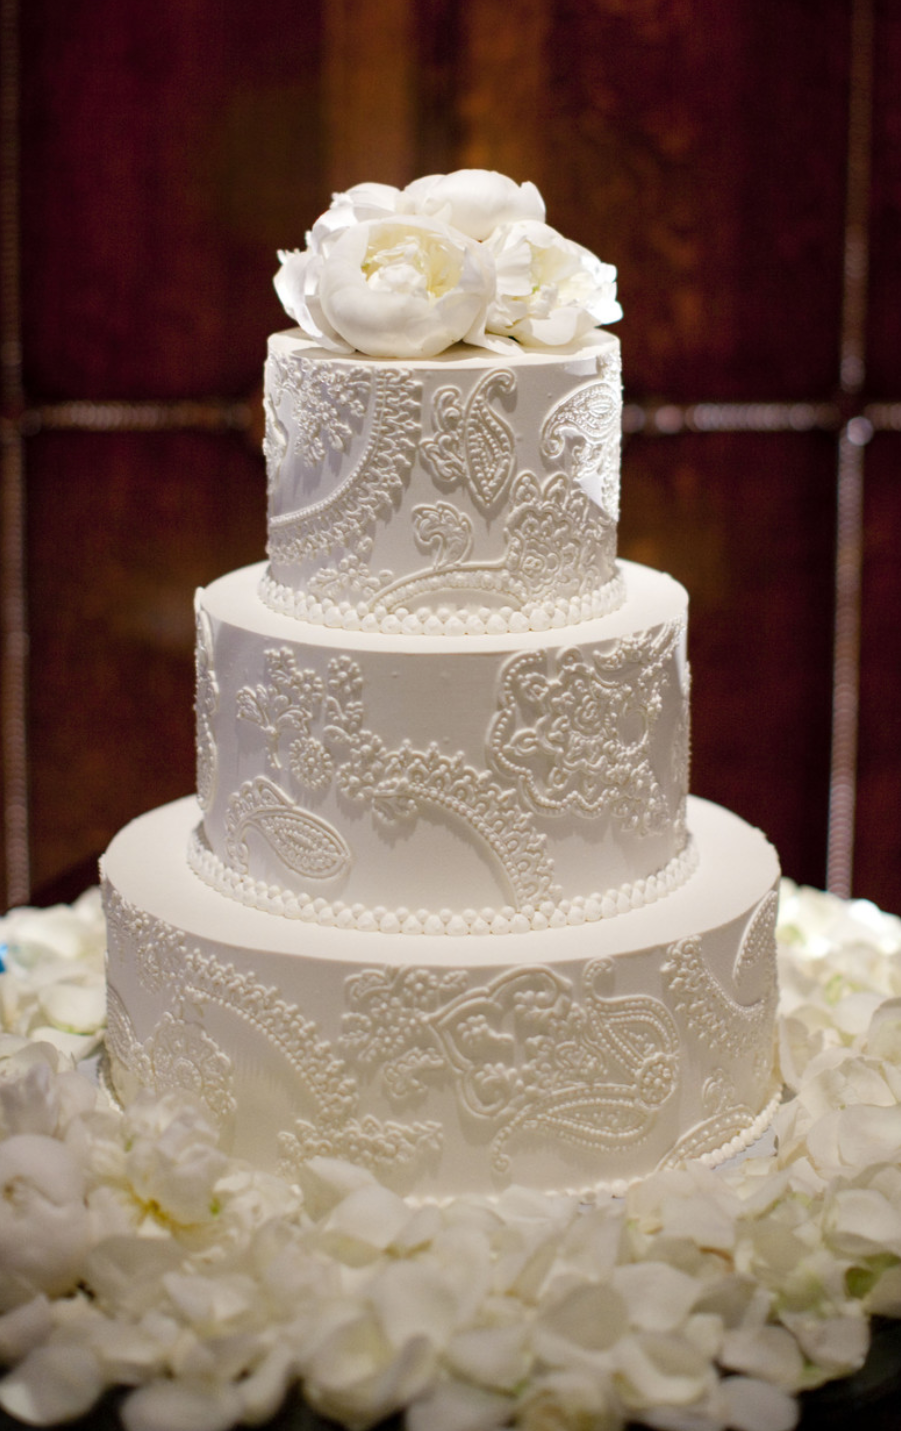 6. What's a South Asian wedding cake blog post without a henna inspired cake? The key is one color. It takes away any tackiness and keeps it simple & classic. You can't go wrong with this style.